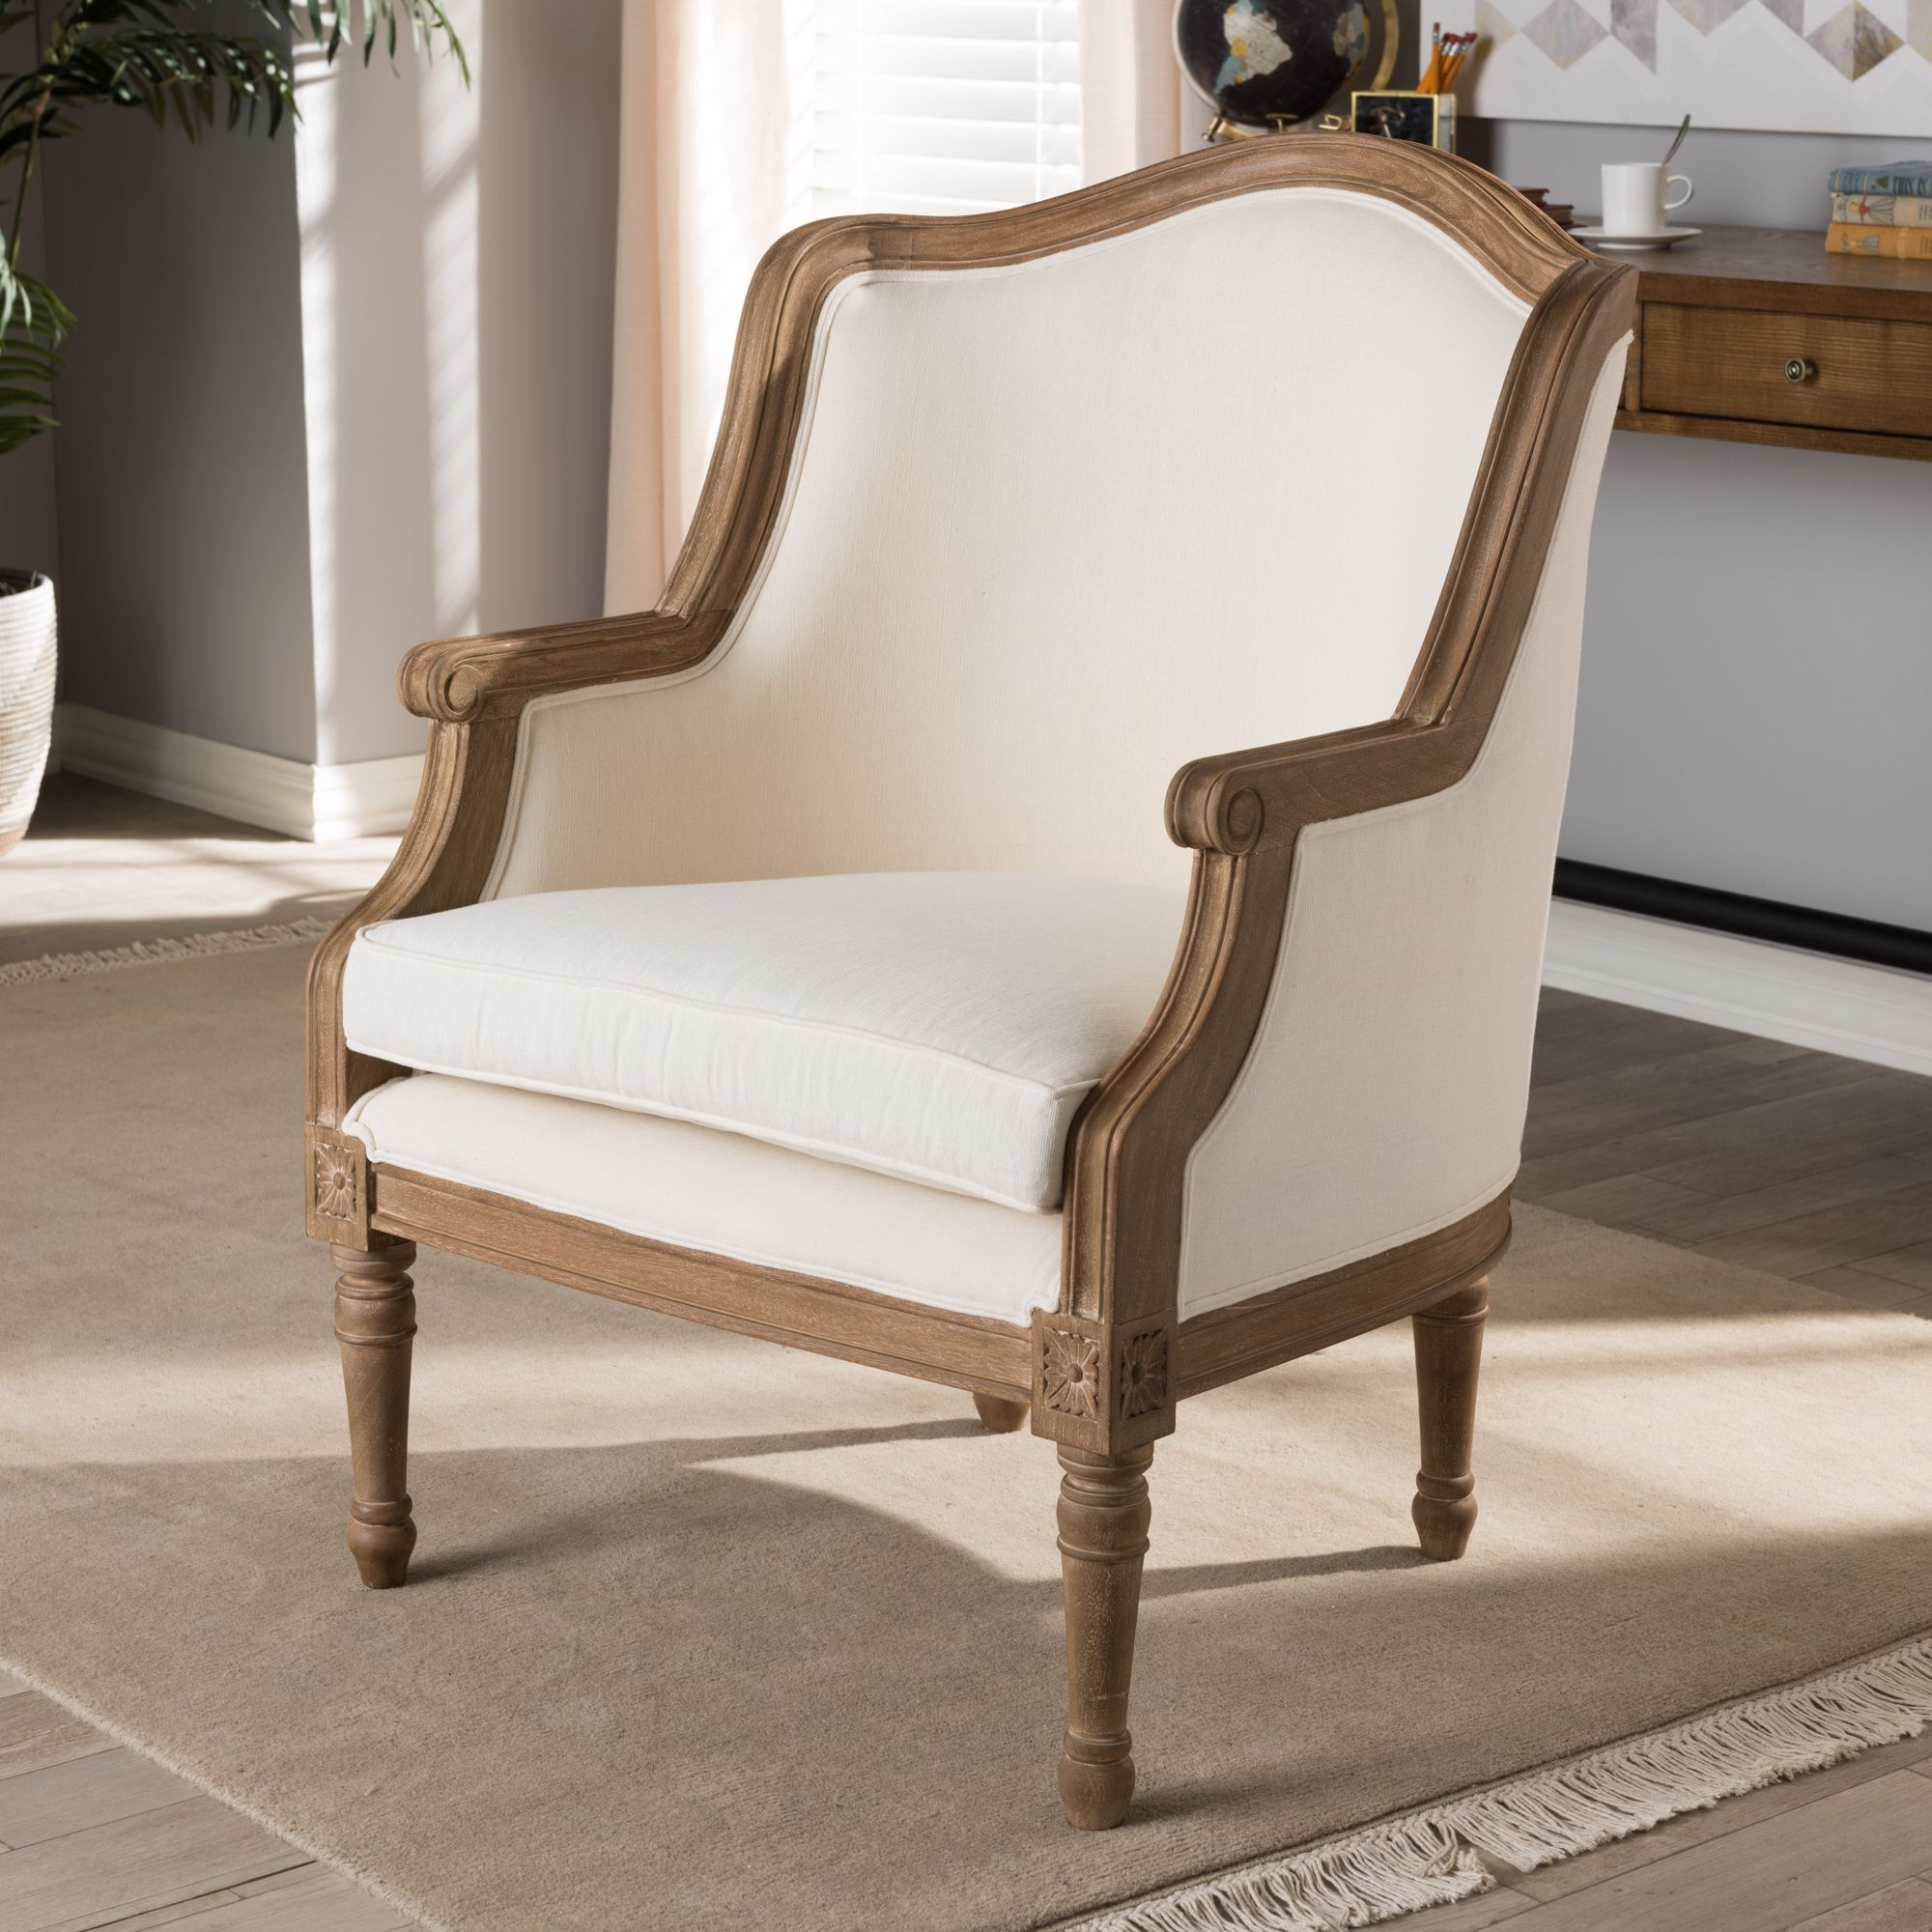 Tremendous Baxton Studio Charlemagne Traditional French Accent Chair Pabps2019 Chair Design Images Pabps2019Com